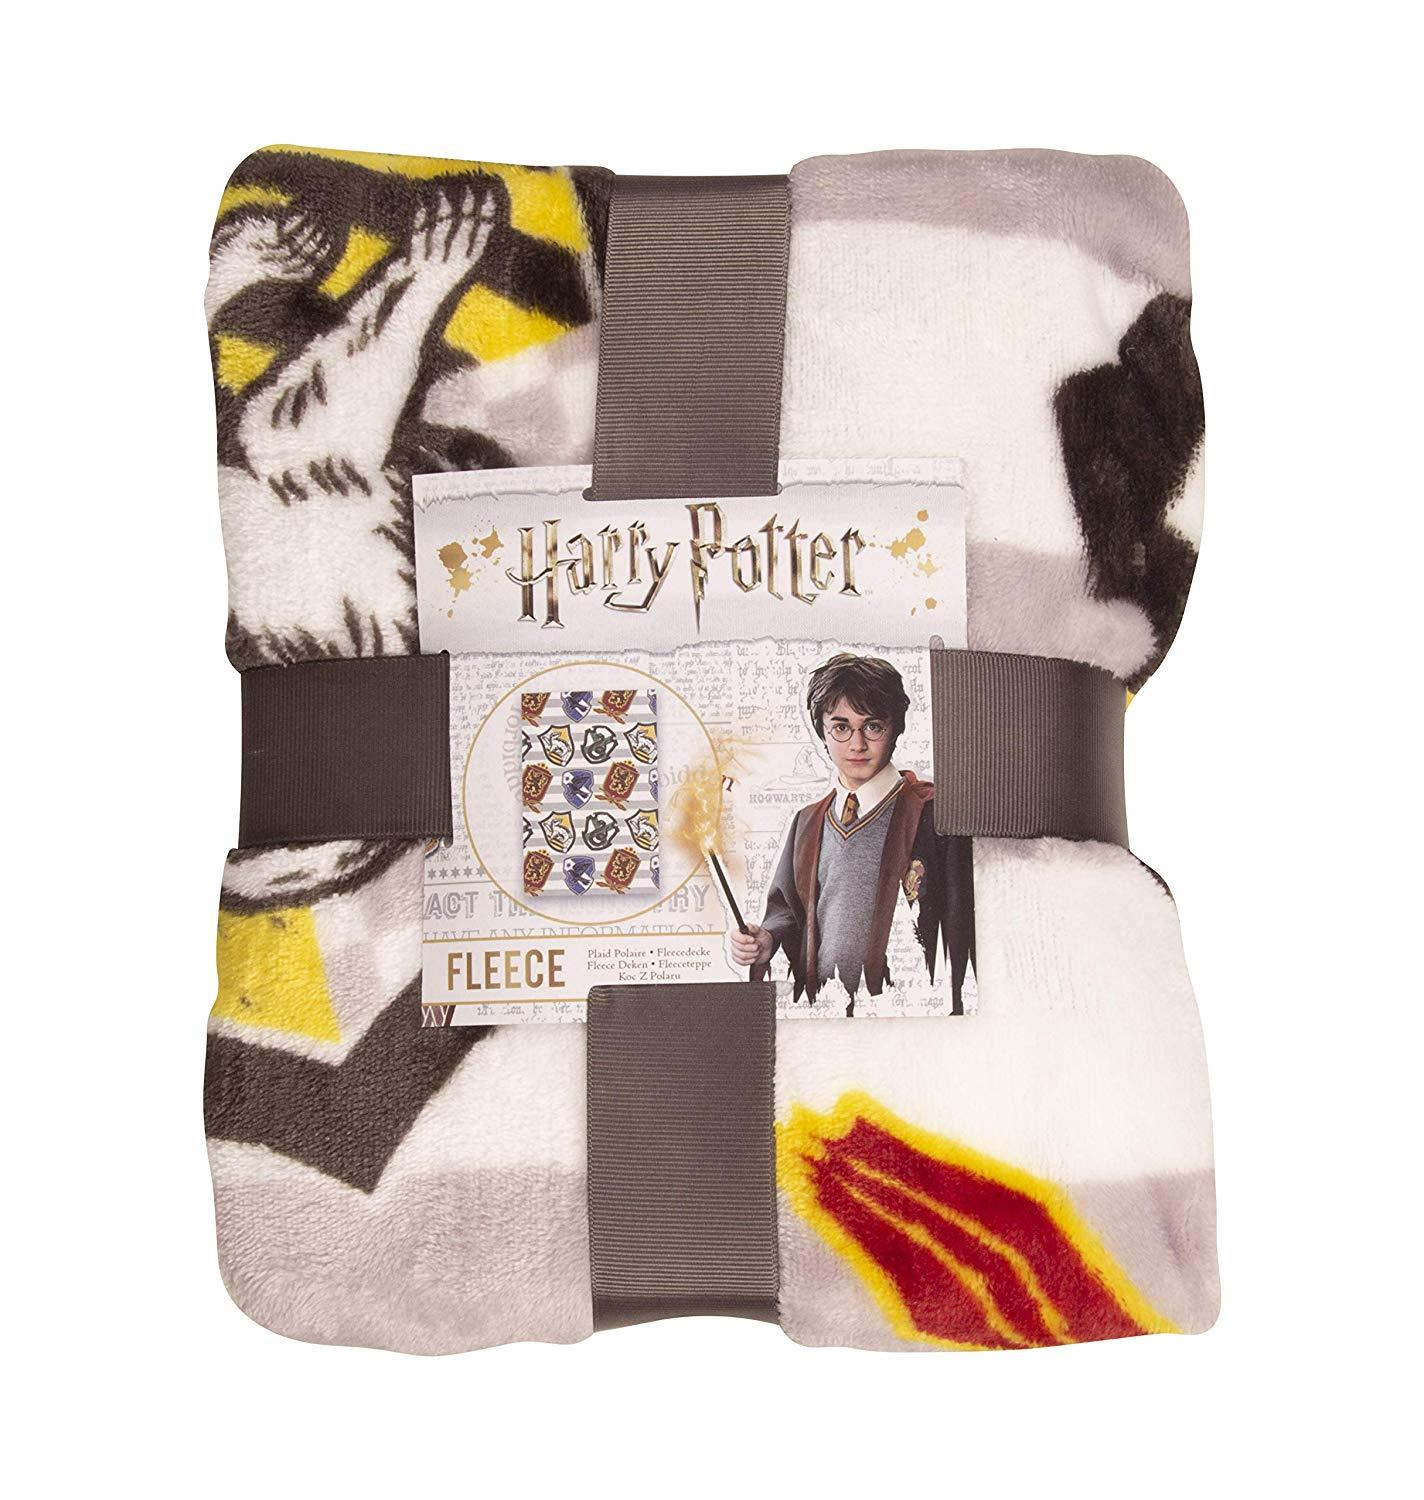 Official-Harry-Potter-Licensed-Fleece-Blanket-Bed-Throw-Hogwarts-Muggles thumbnail 7